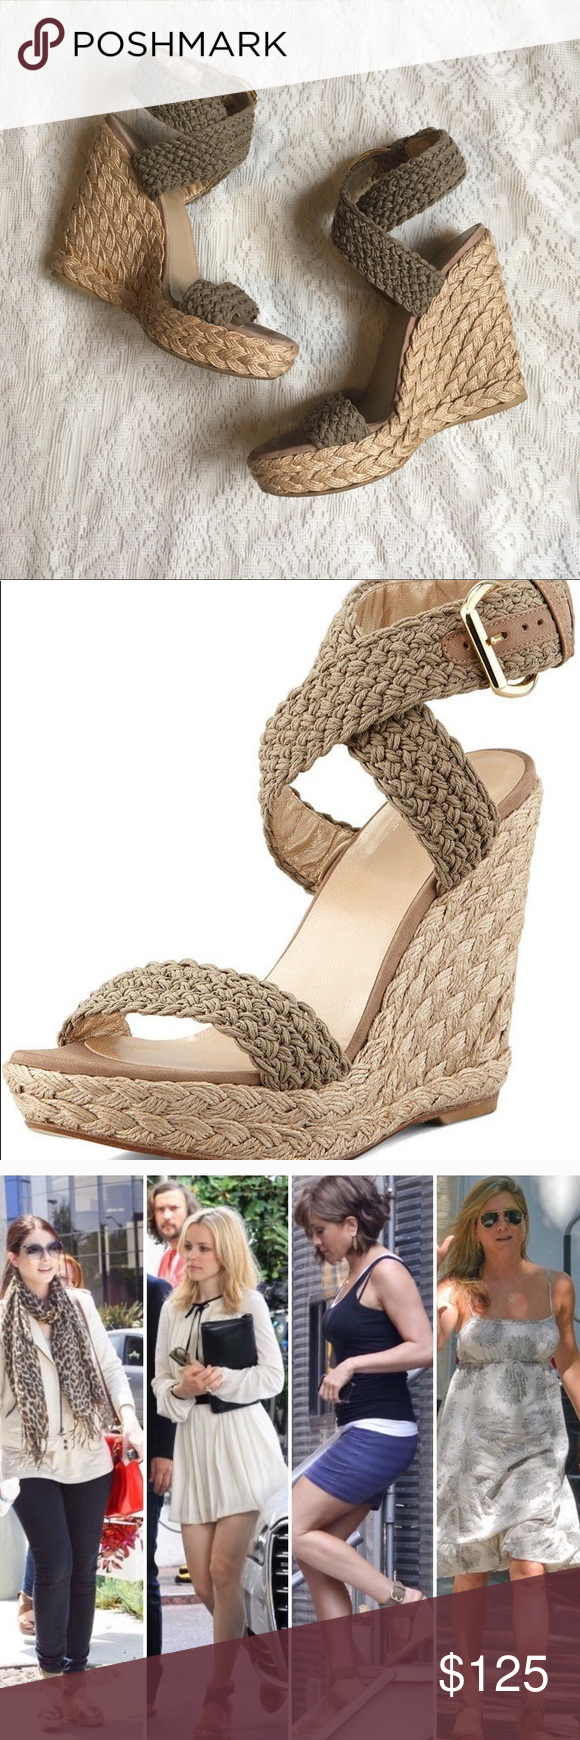 bdf247af0fa3 Stuart Weitzman Alex ankle strap espadrille This show is stunningly  beautiful! Highly loved and worn